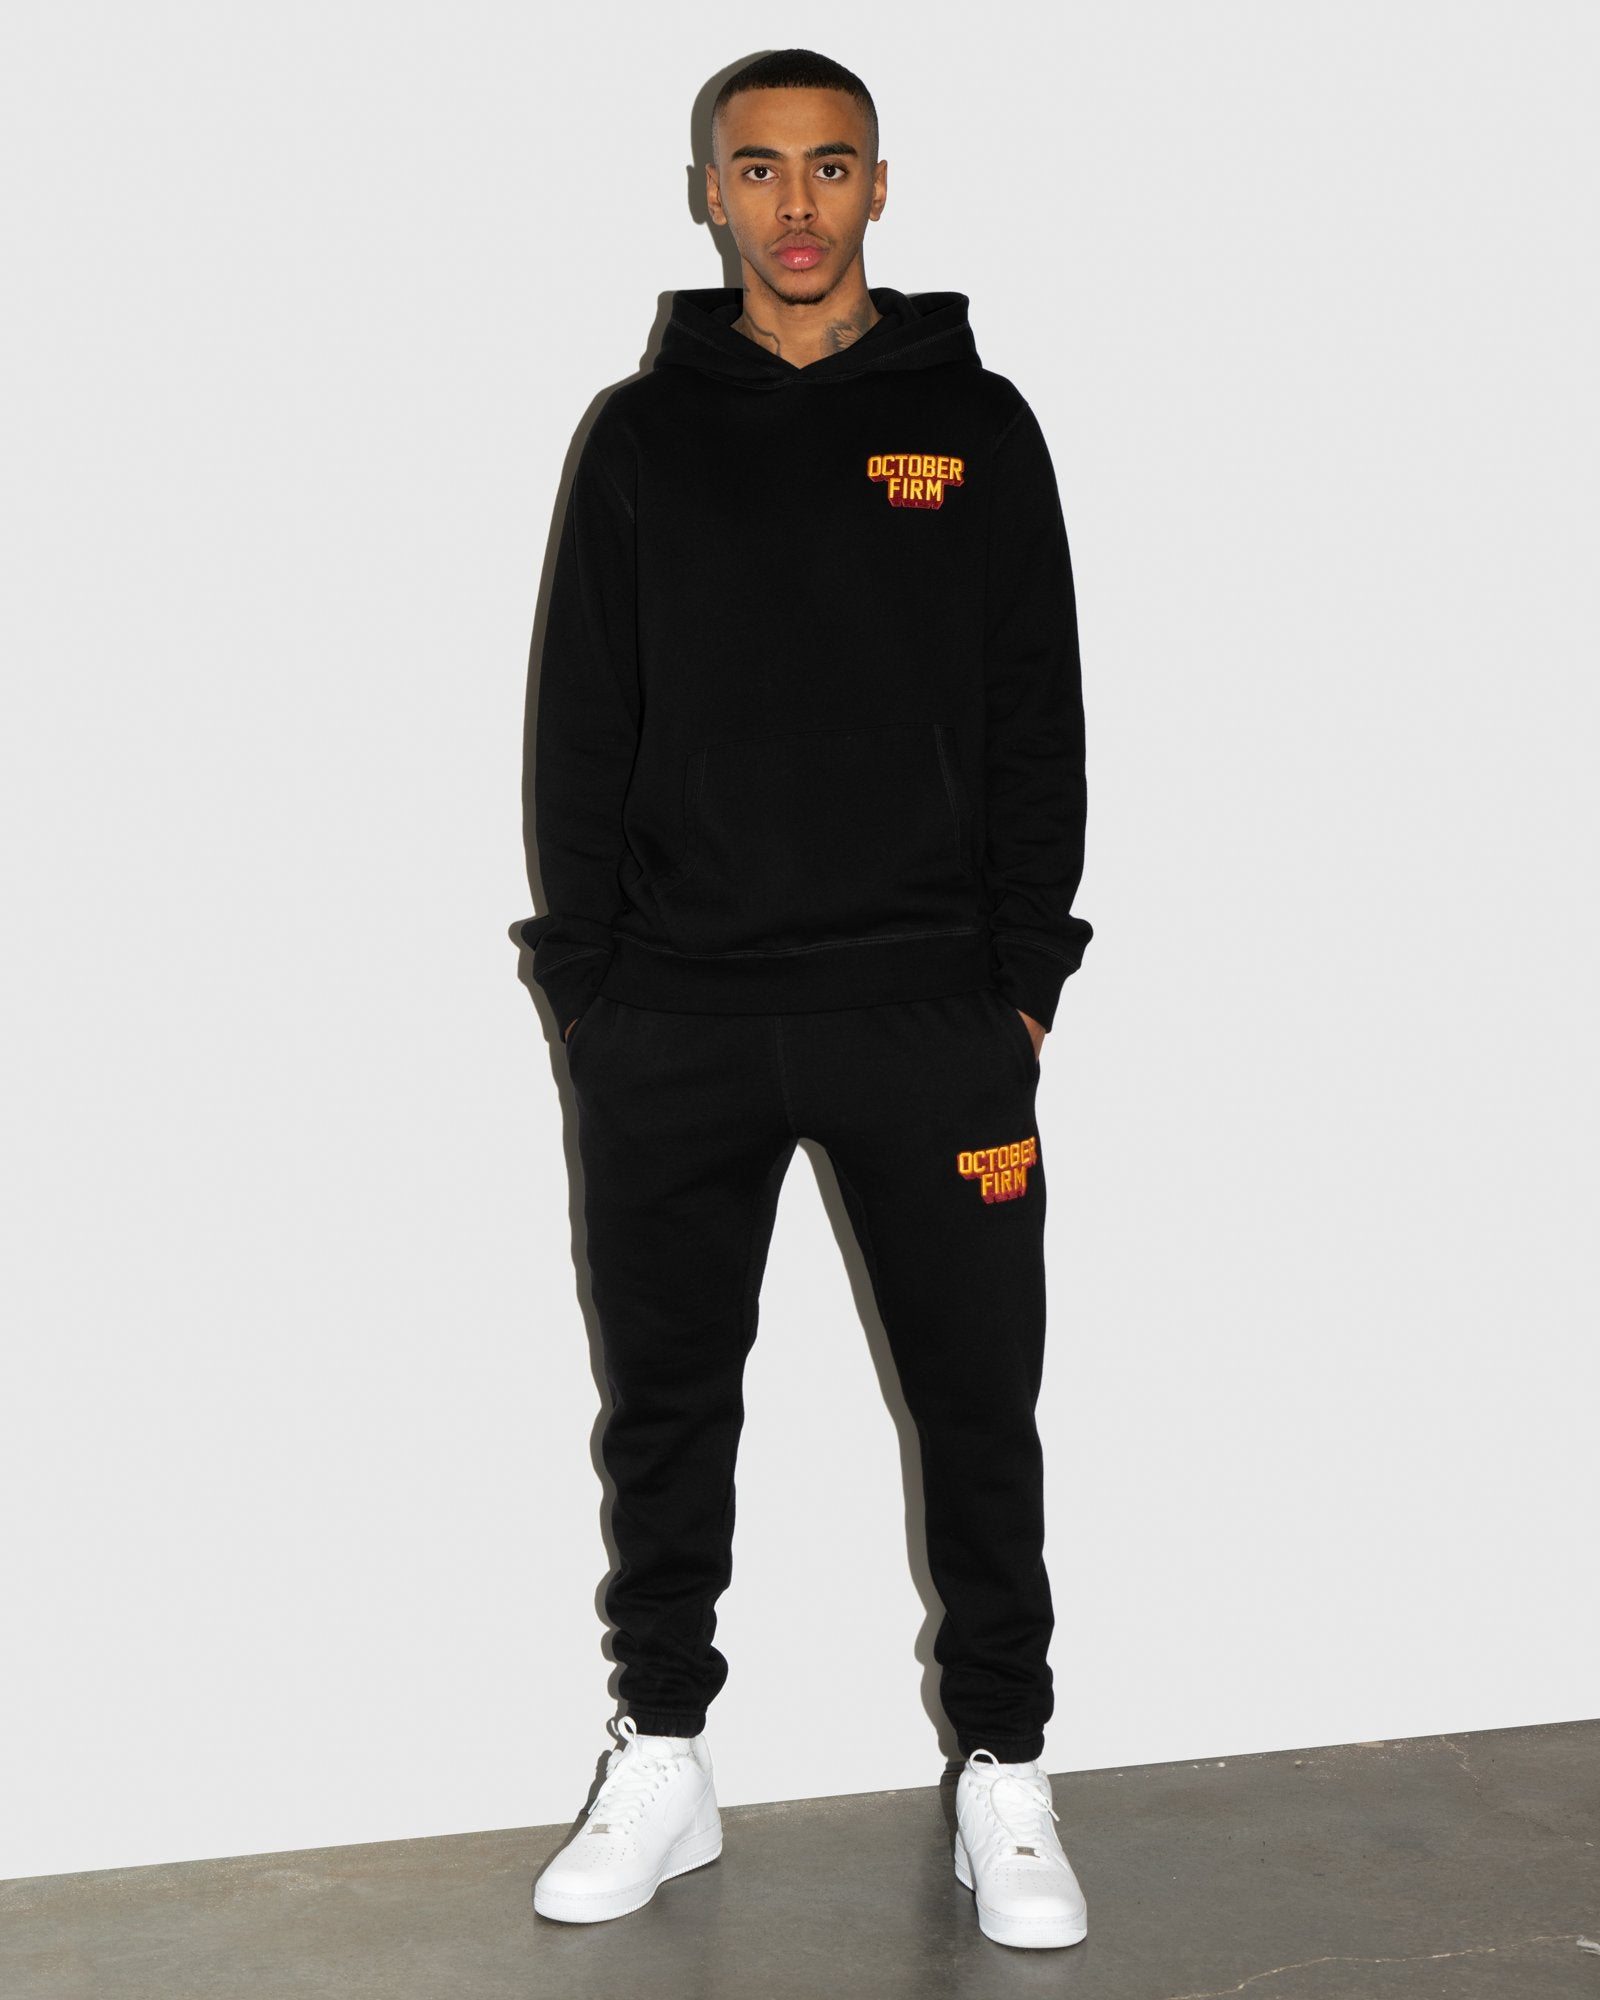 OCTOBER FIRM SHADOW SWEATPANT - BLACK IMAGE #2